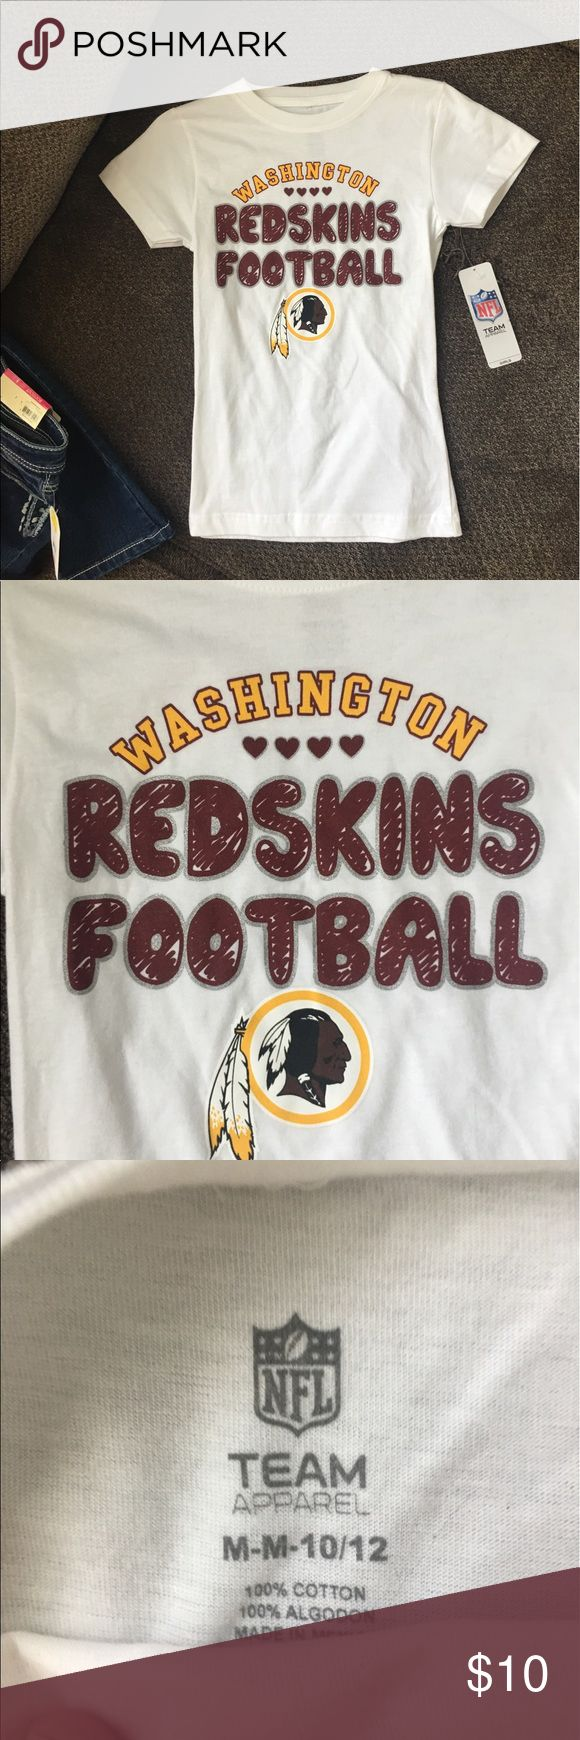 NWT girls medium NFL Redskins t shirt! NWT girls medium NFL Redskins t shirt! Shirts & Tops Tees - Short Sleeve